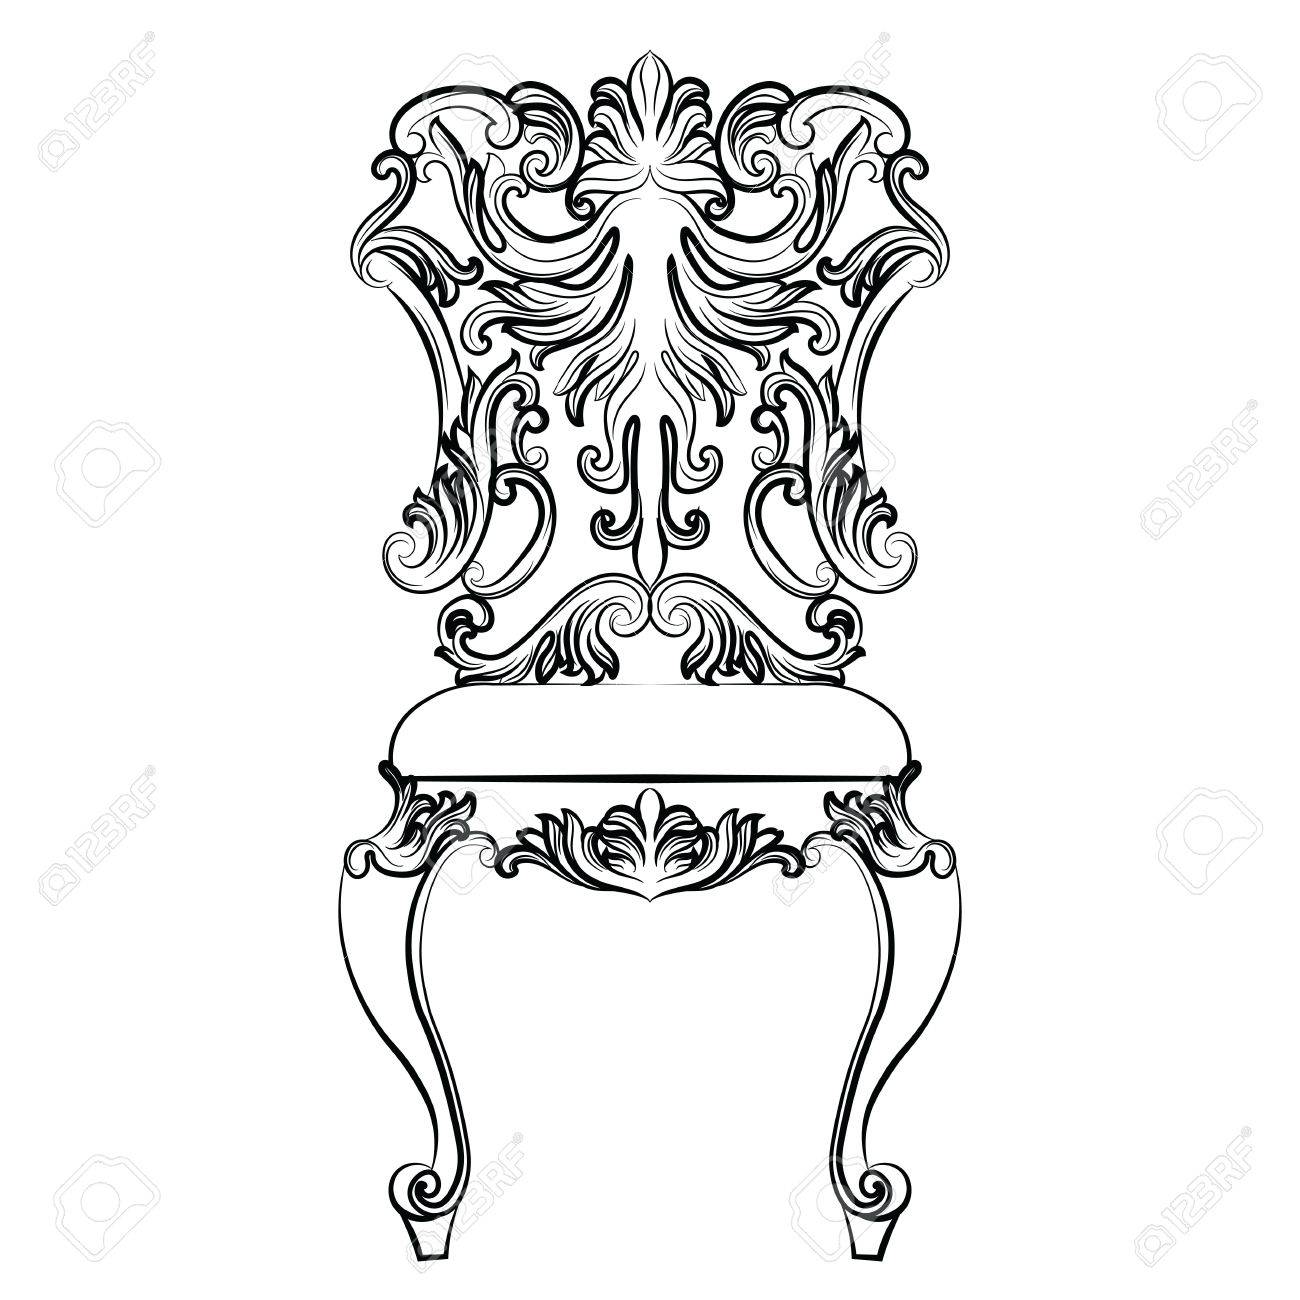 Rococo furniture sketch - Fabulous Rich Baroque Rococo Chair French Luxury Rich Carved Ornaments Furniture Vector Victorian Exquisite